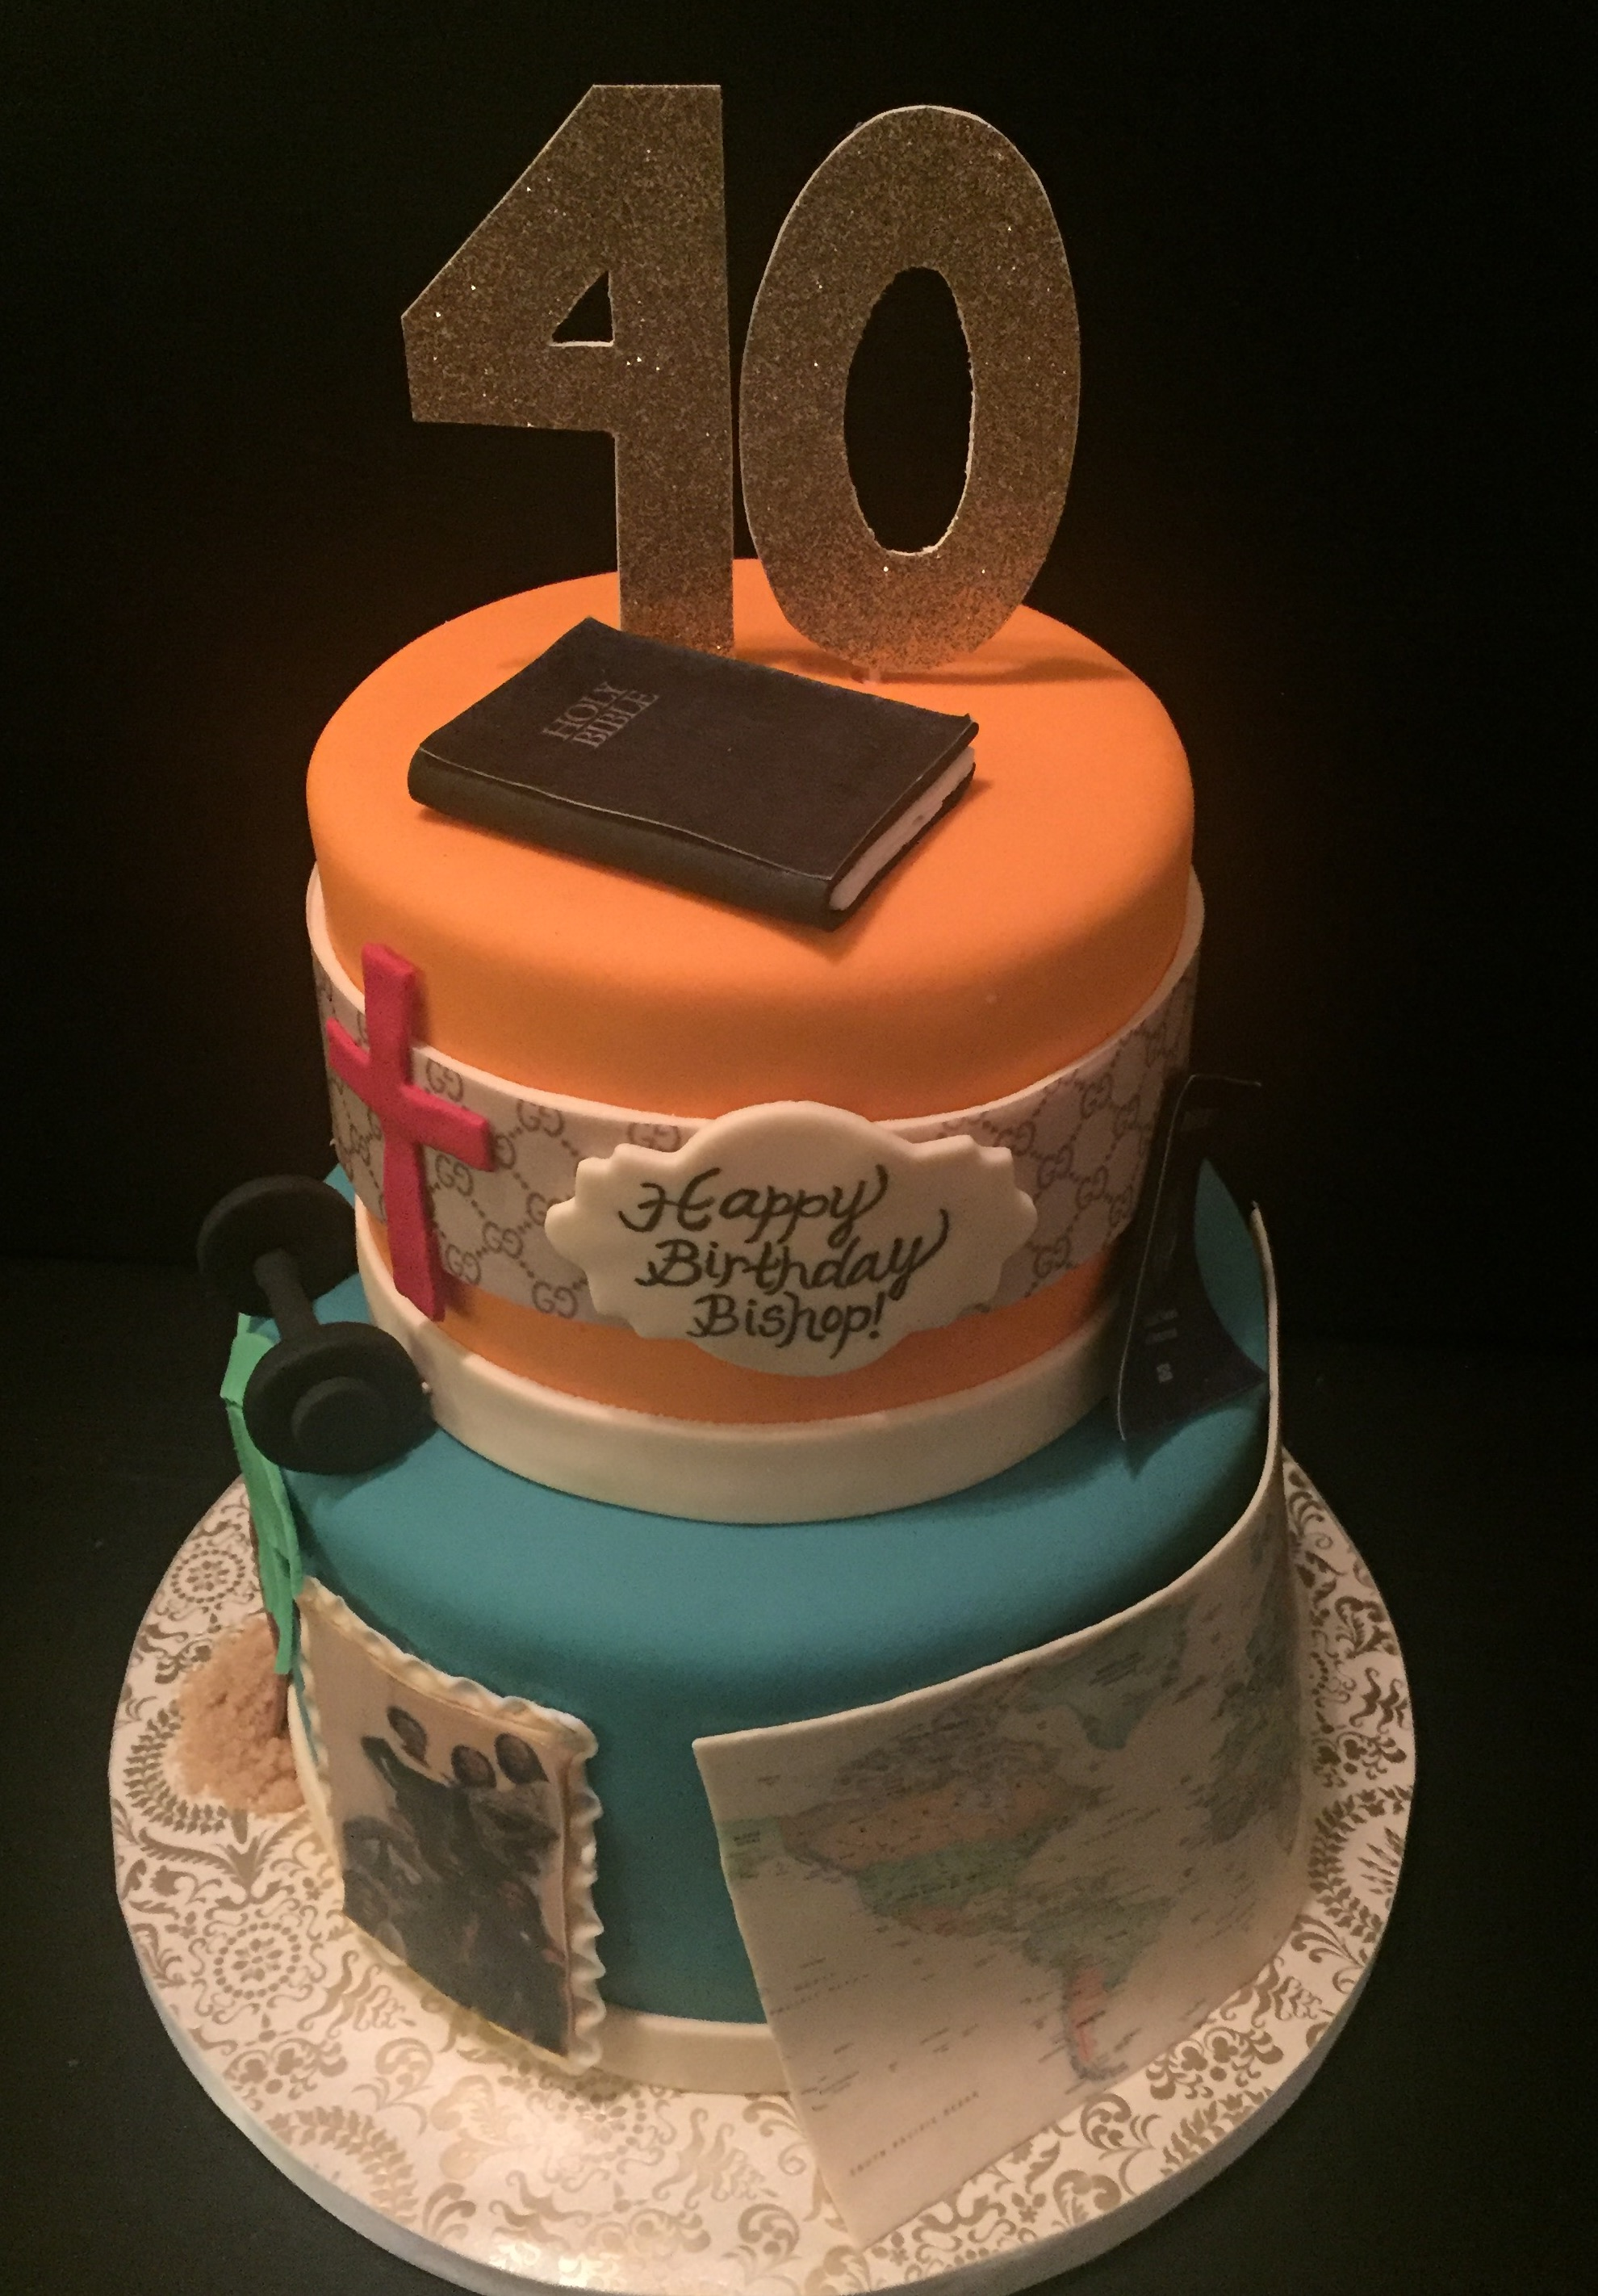 2-Tier Birthday Cake